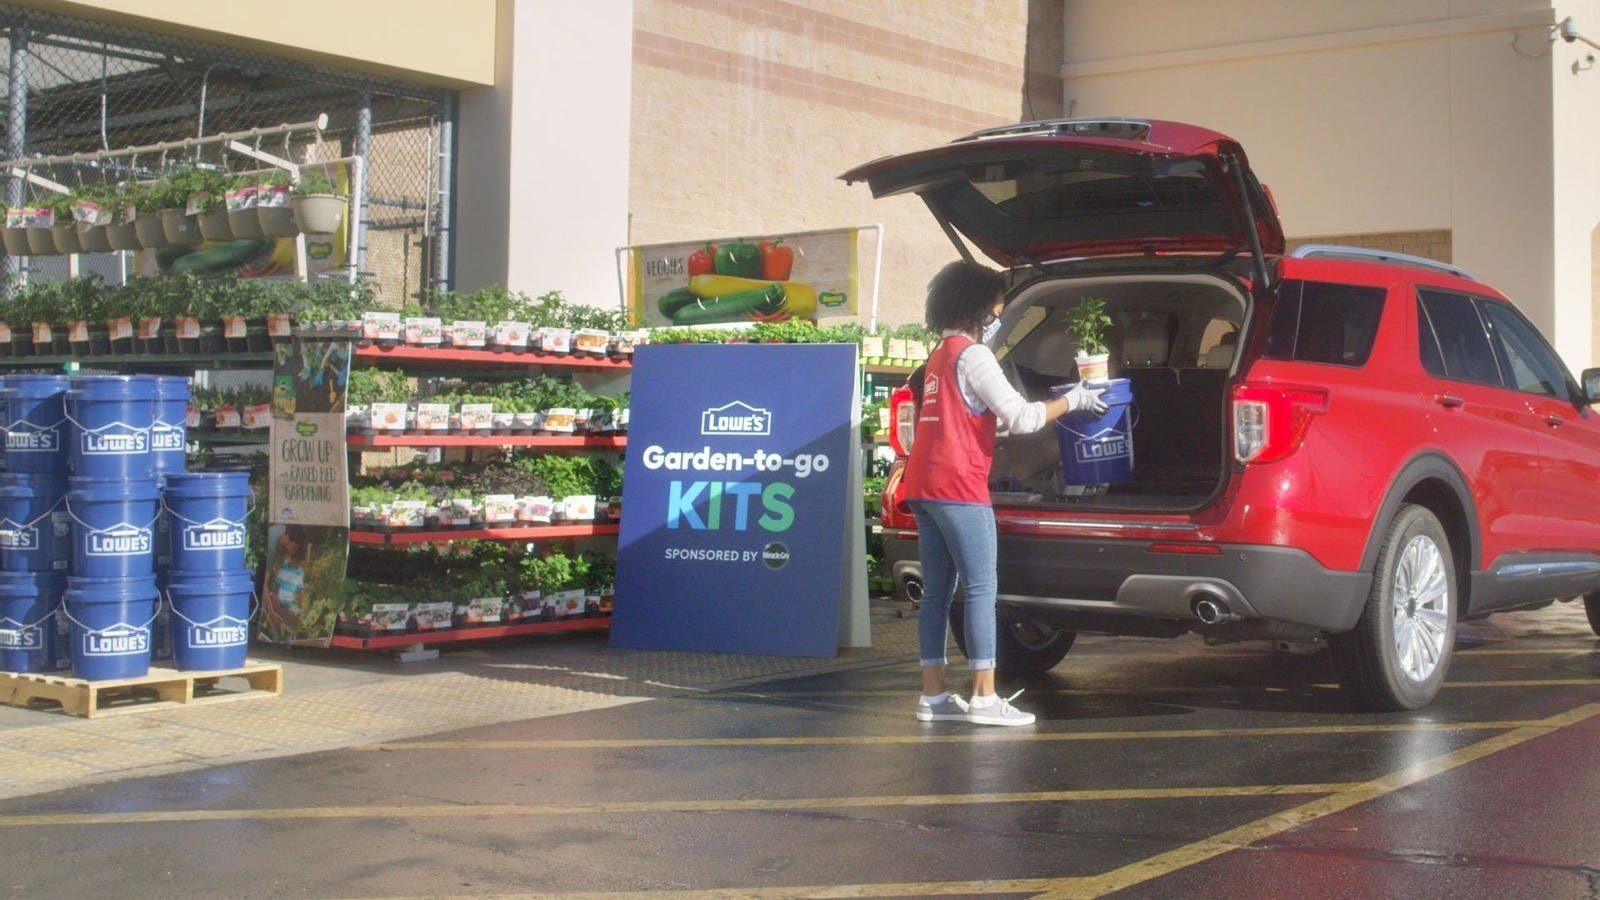 Lowe's Earth Day freebie: Sign-up begins Thursday for April 22 free tree sapling giveaway